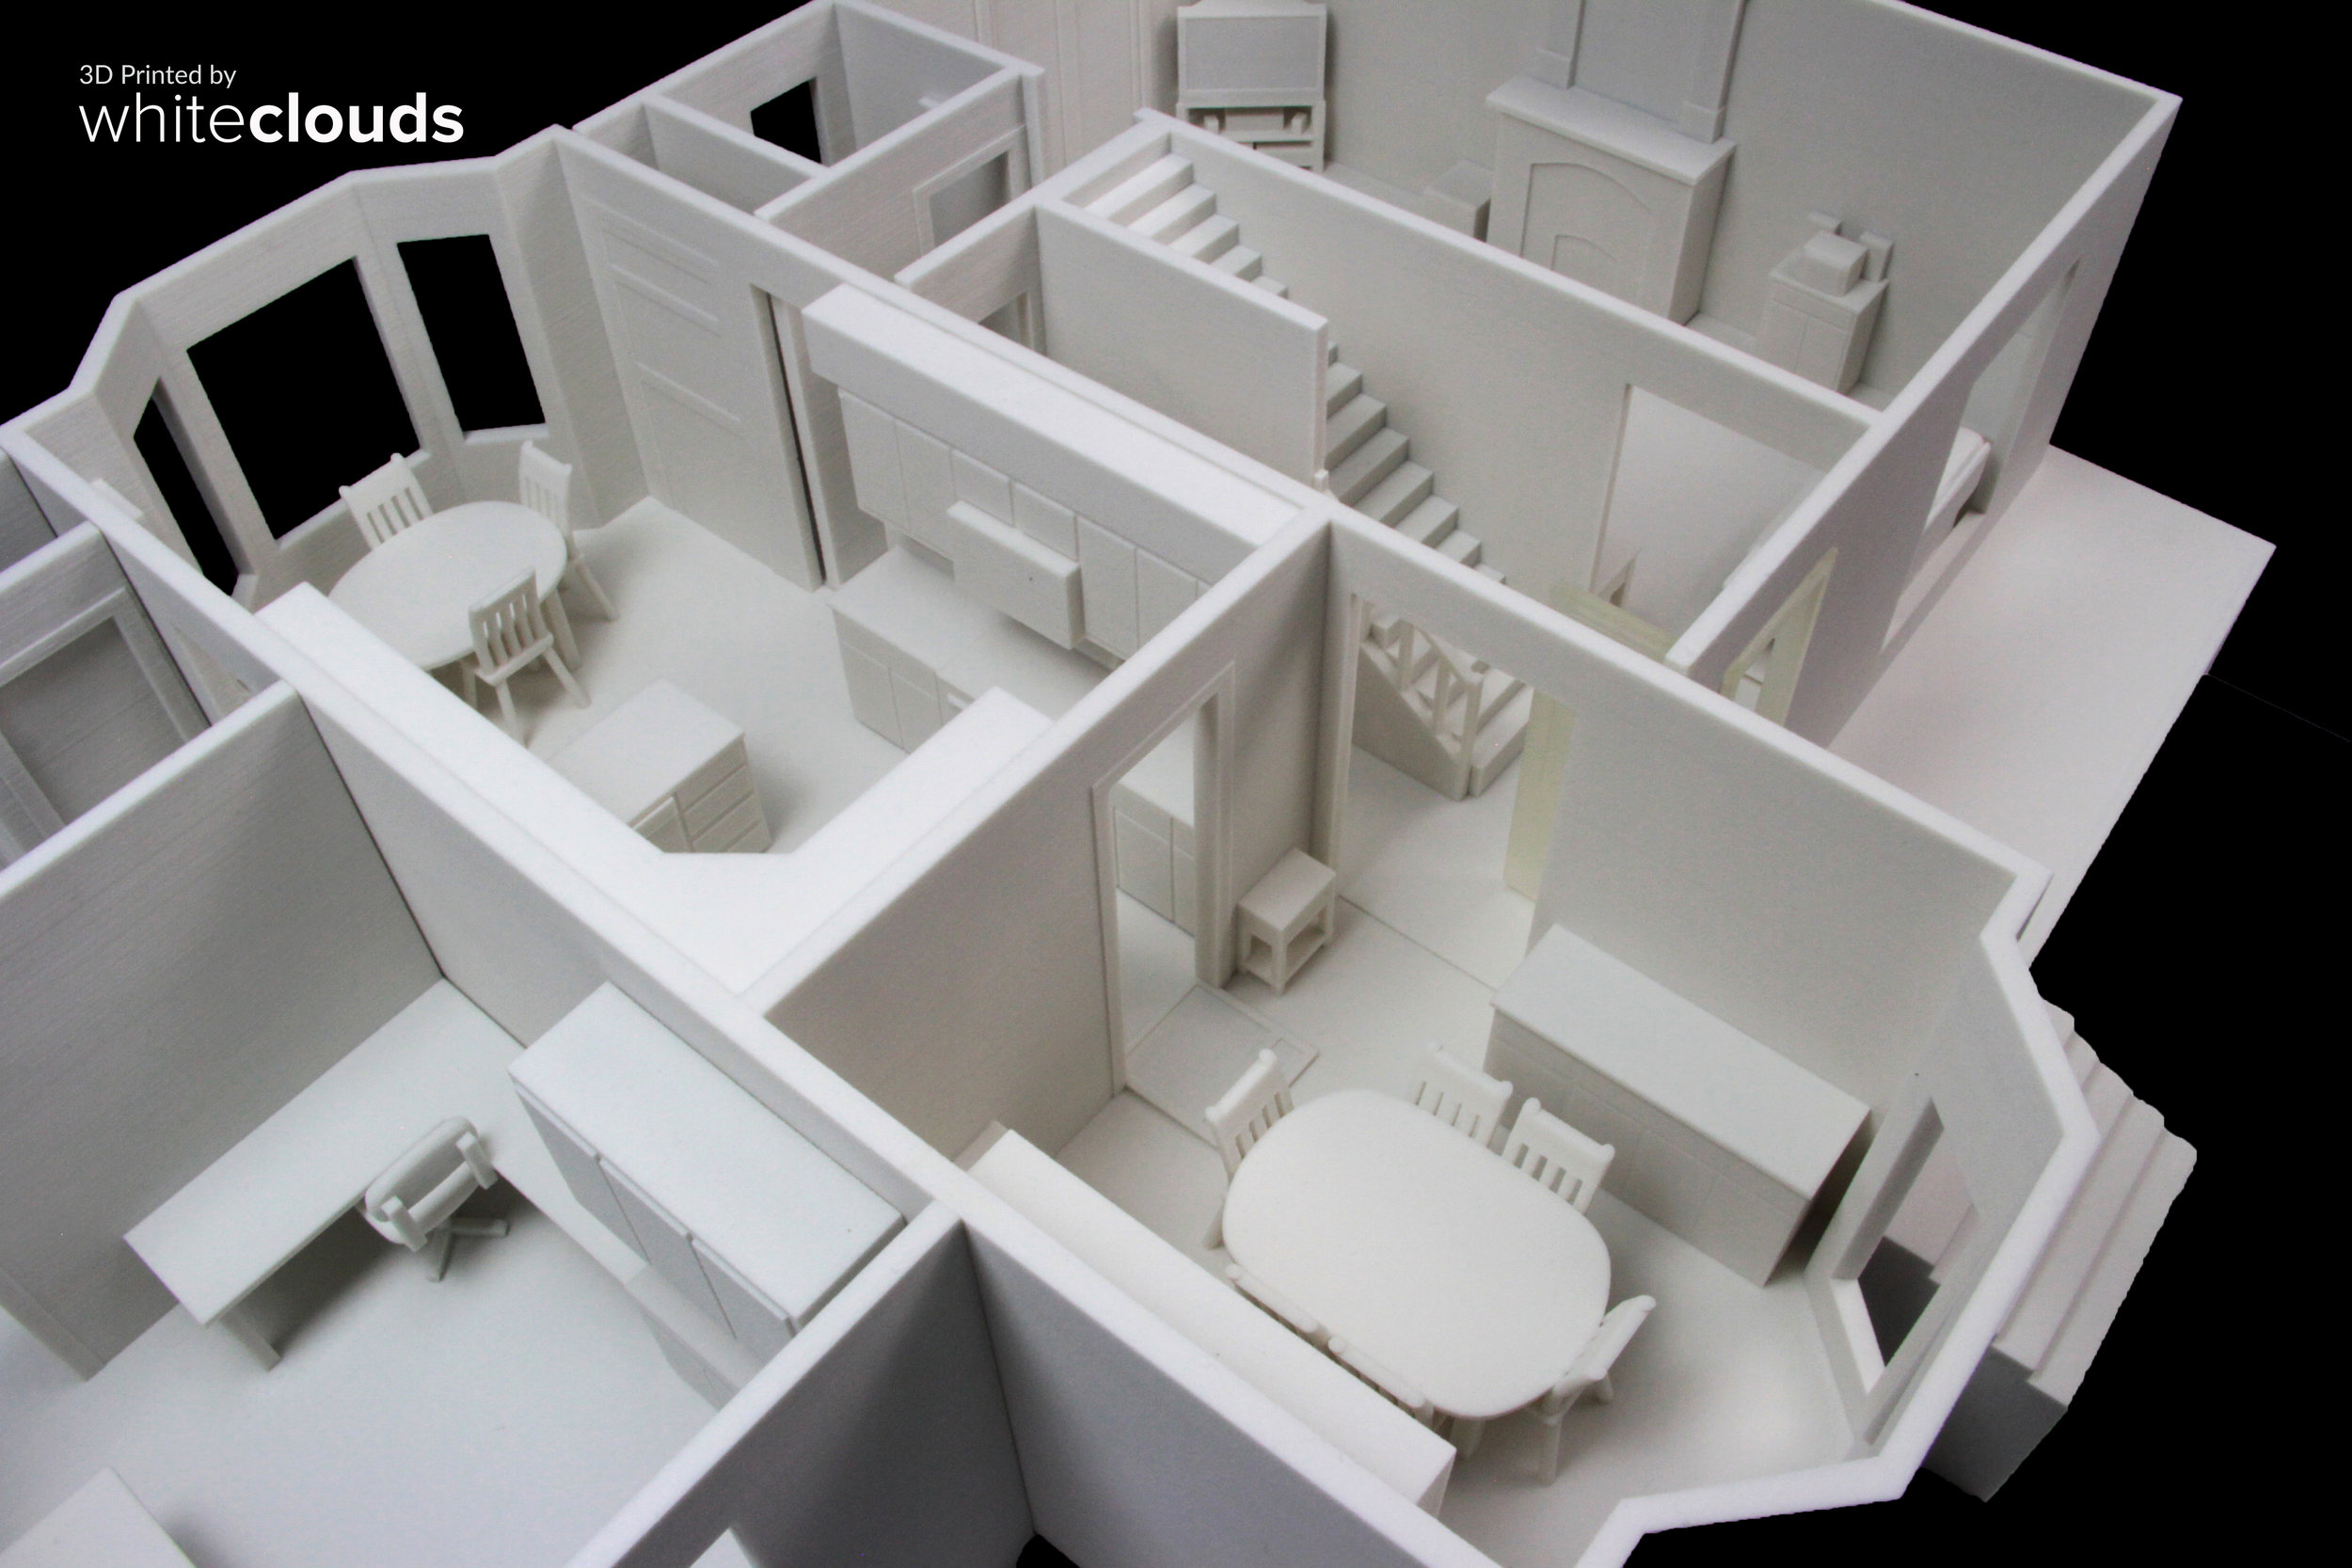 3D-Printed-WhiteClouds-Trial-House-Architecture-Trial-House-Website-4.jpg